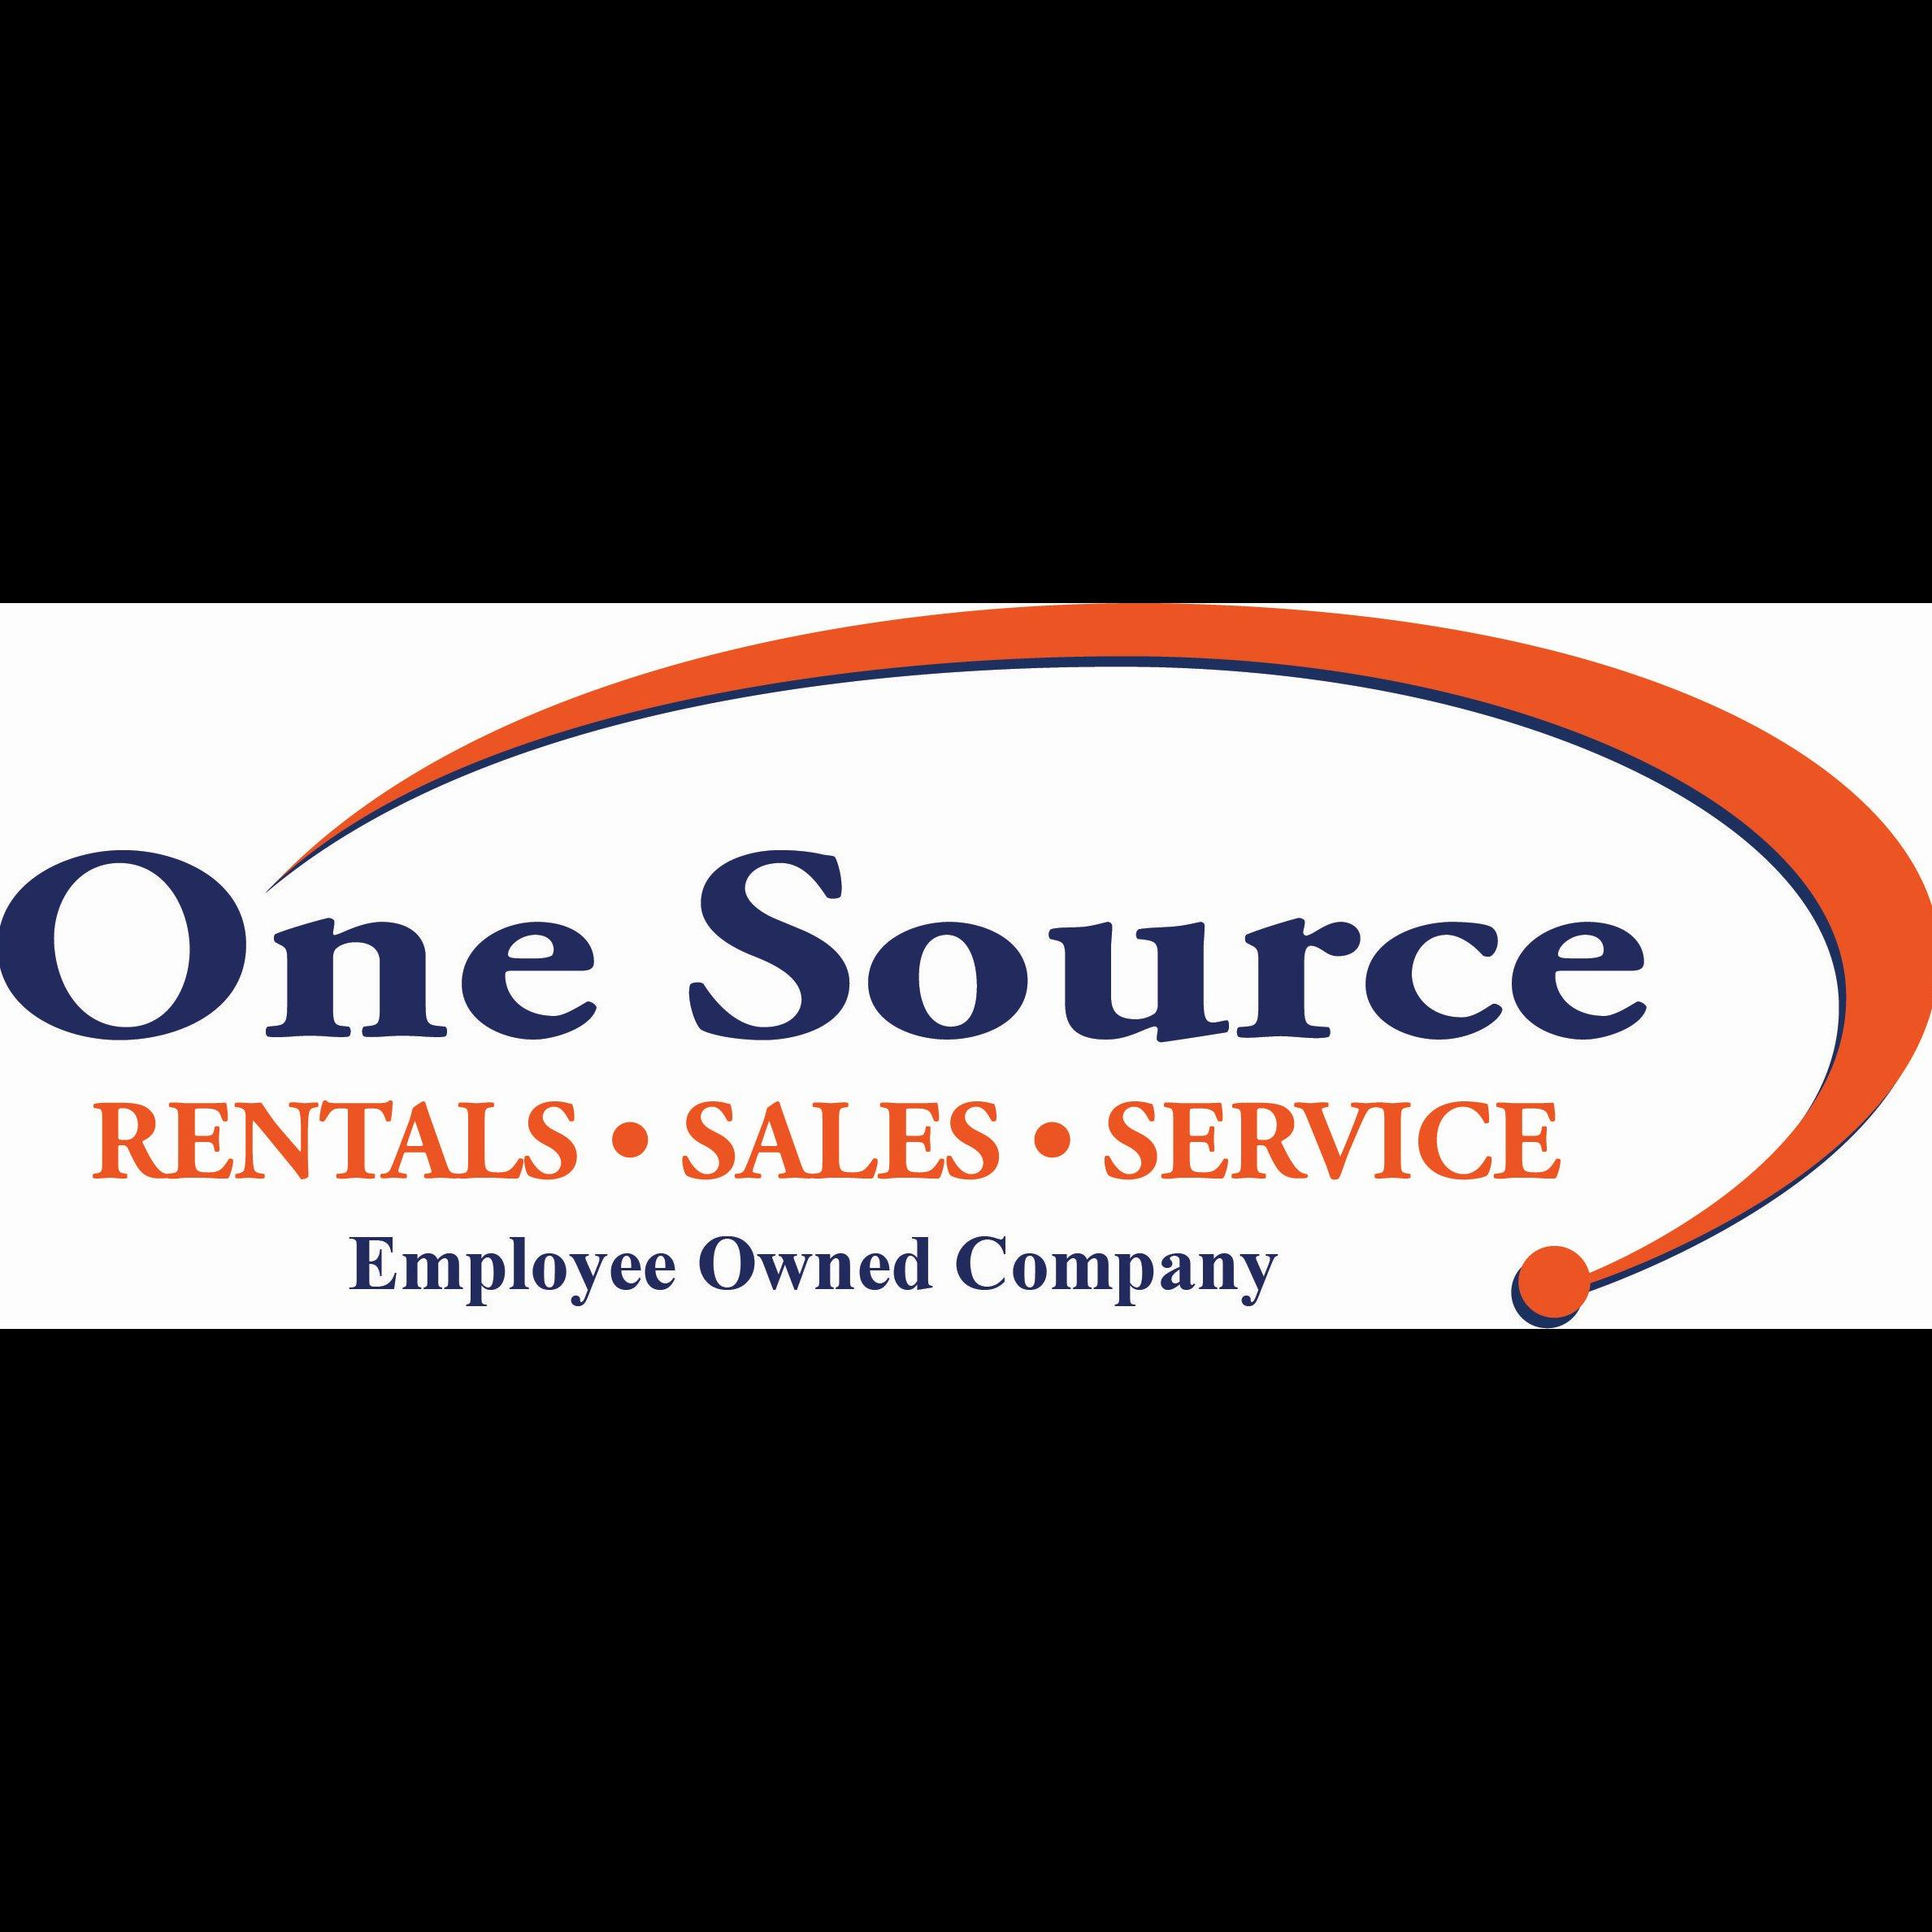 One Source Equipment Rentals, Inc. image 12